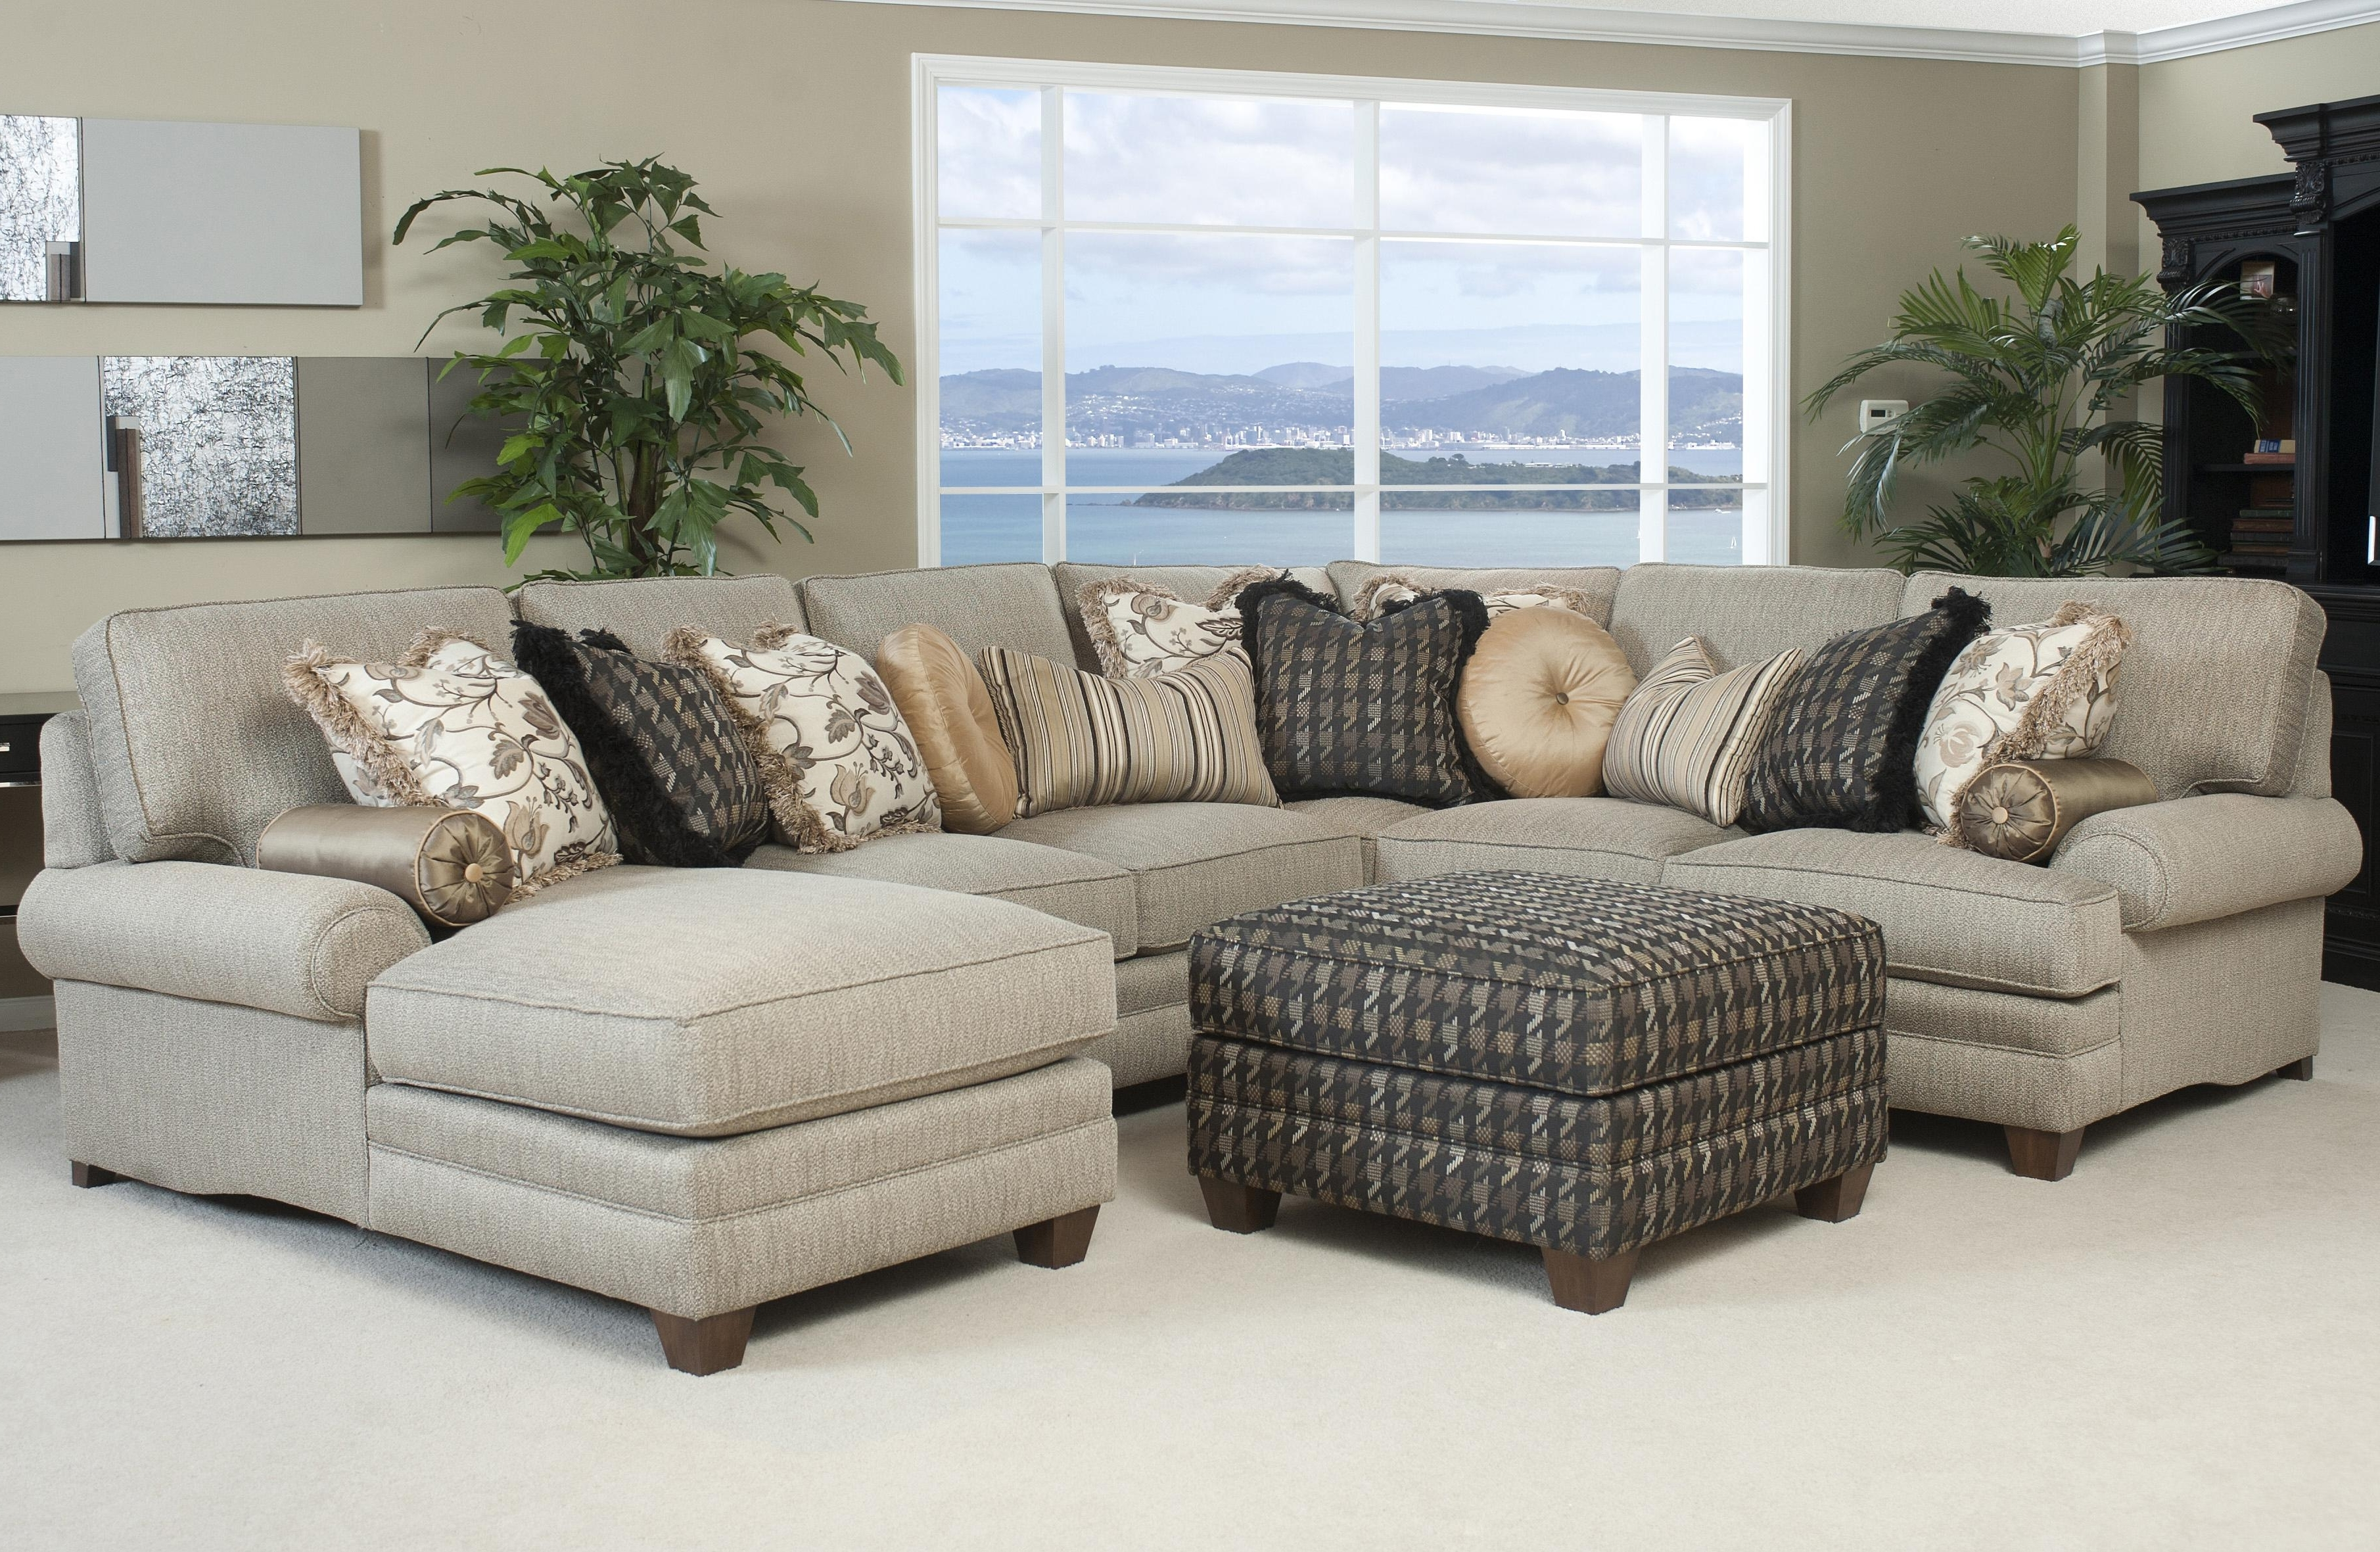 2017 Fabric Sectional Sofas With Chaise For Sofa ~ Comfy Sectional Sofa With Chaise F7135 1000X1000 Sectional (View 2 of 15)